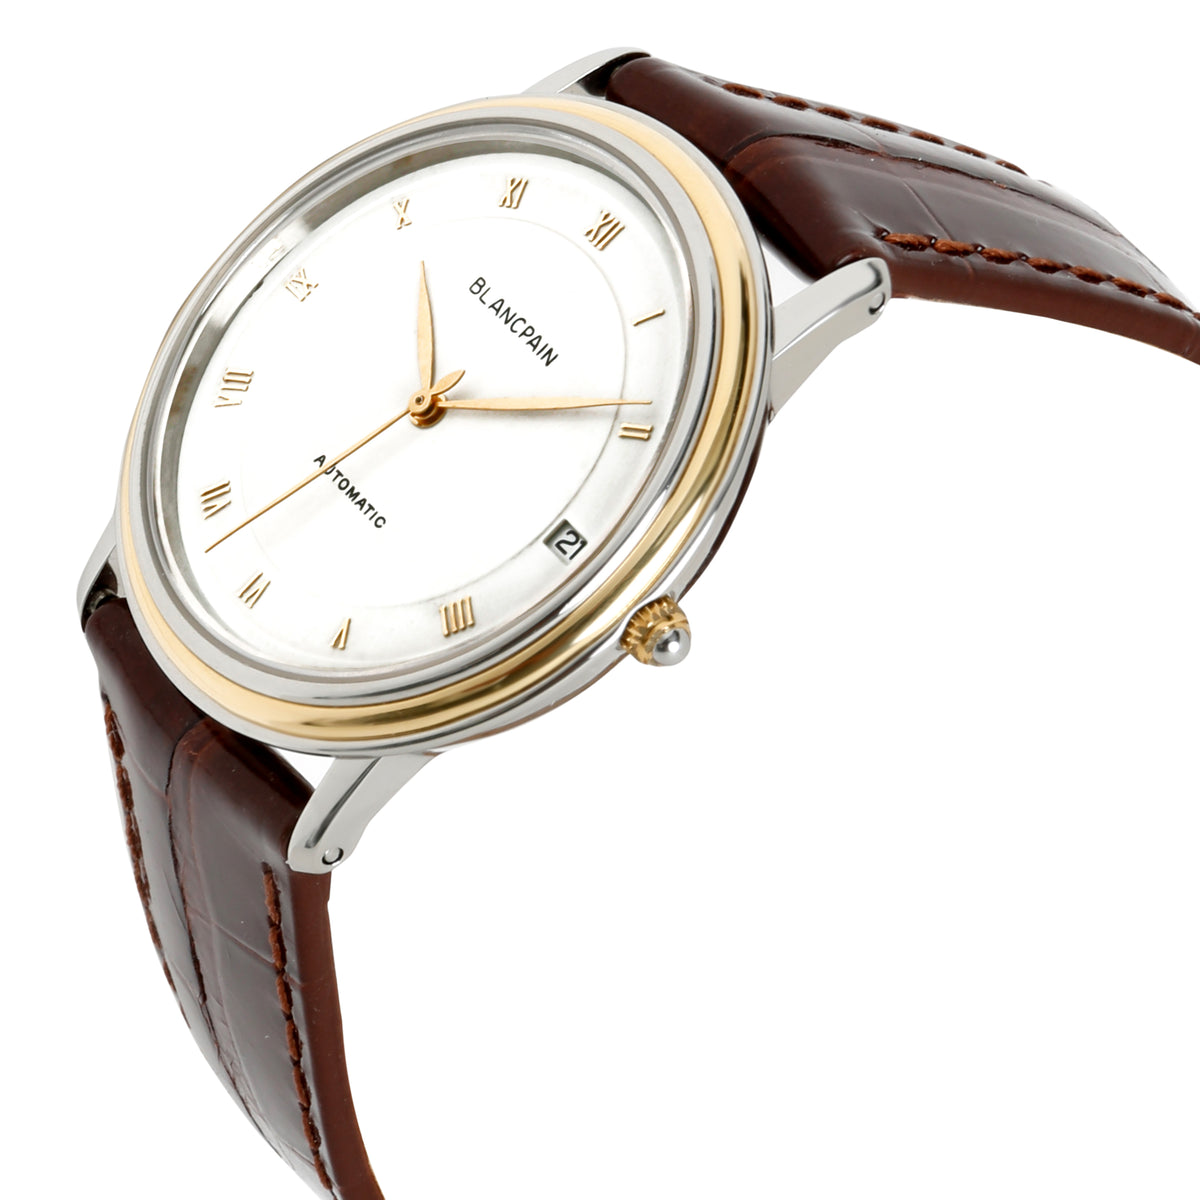 Blancpain Villeret 0095-1318 Men's Watch in 18kt Stainless Steel & Yellow Gold